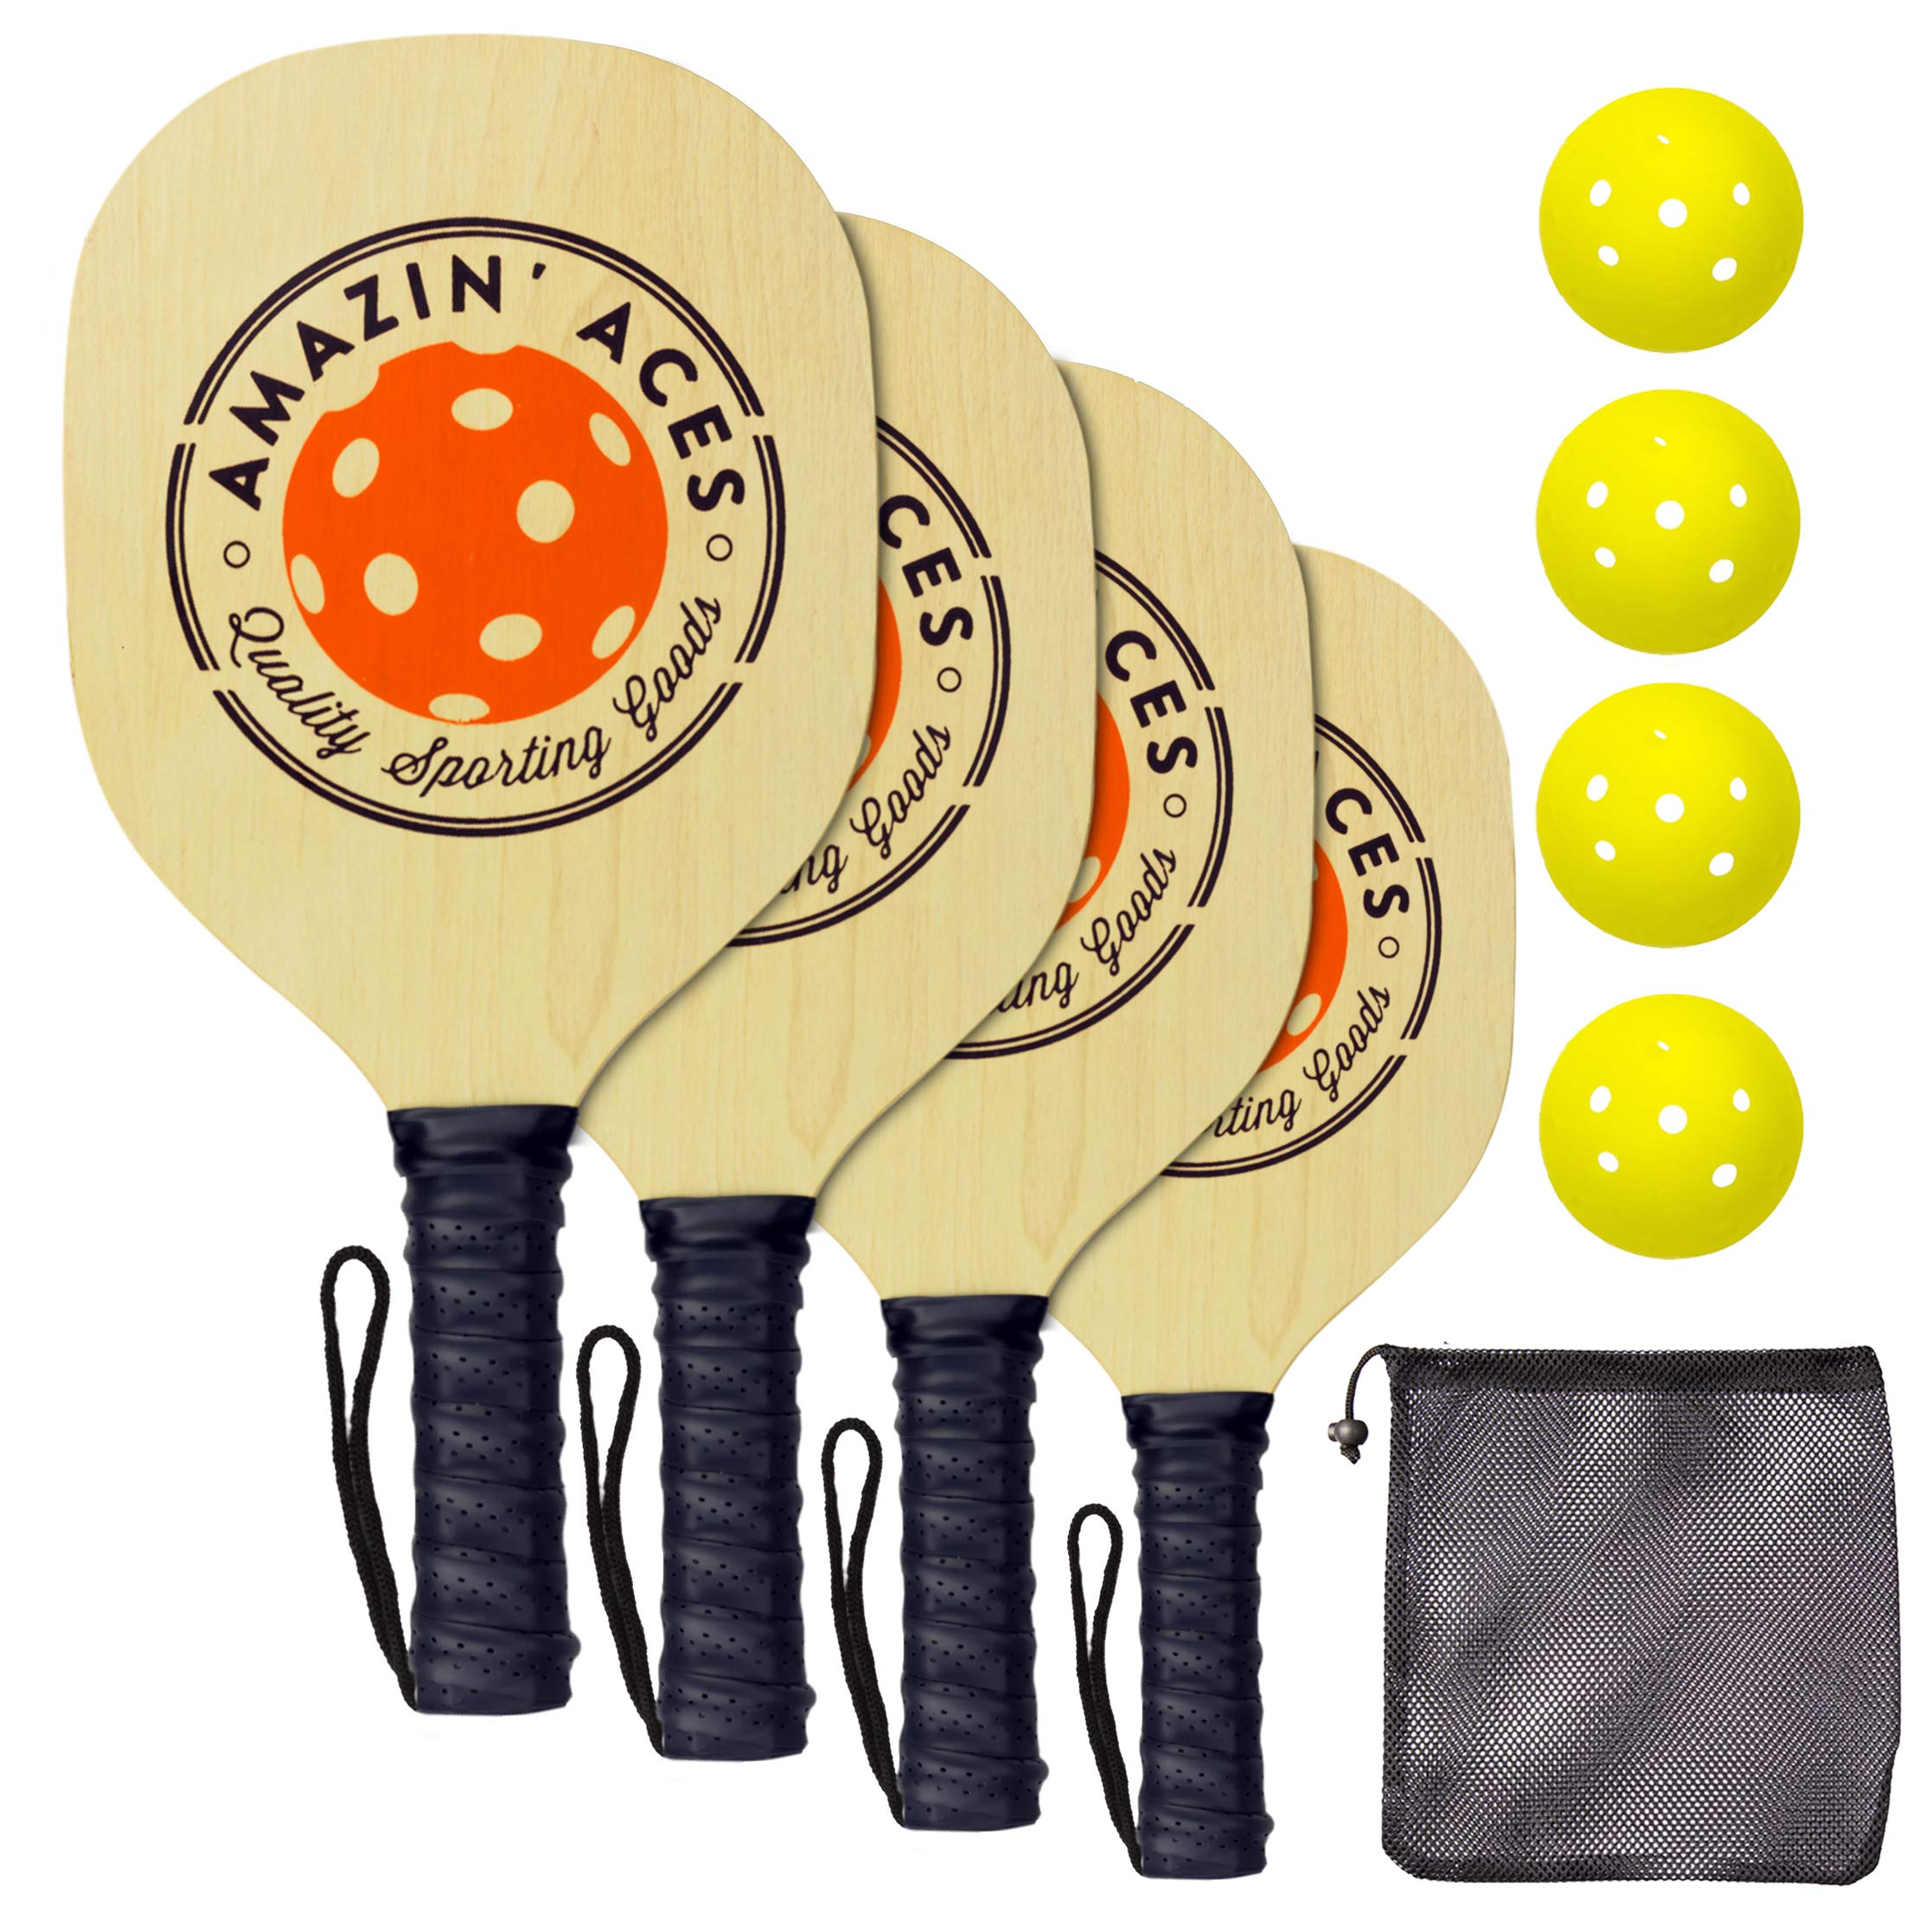 Amazin' Aces Pickleball Paddle Set Pickleball Set Includes 2-4 Wood Pickleball Paddles, 4 Pickleballs, 1 Carry Bag & Guaranteed Fun! | Beginner-Intermediate Racket | Includes Free eBook by Amazin' Aces